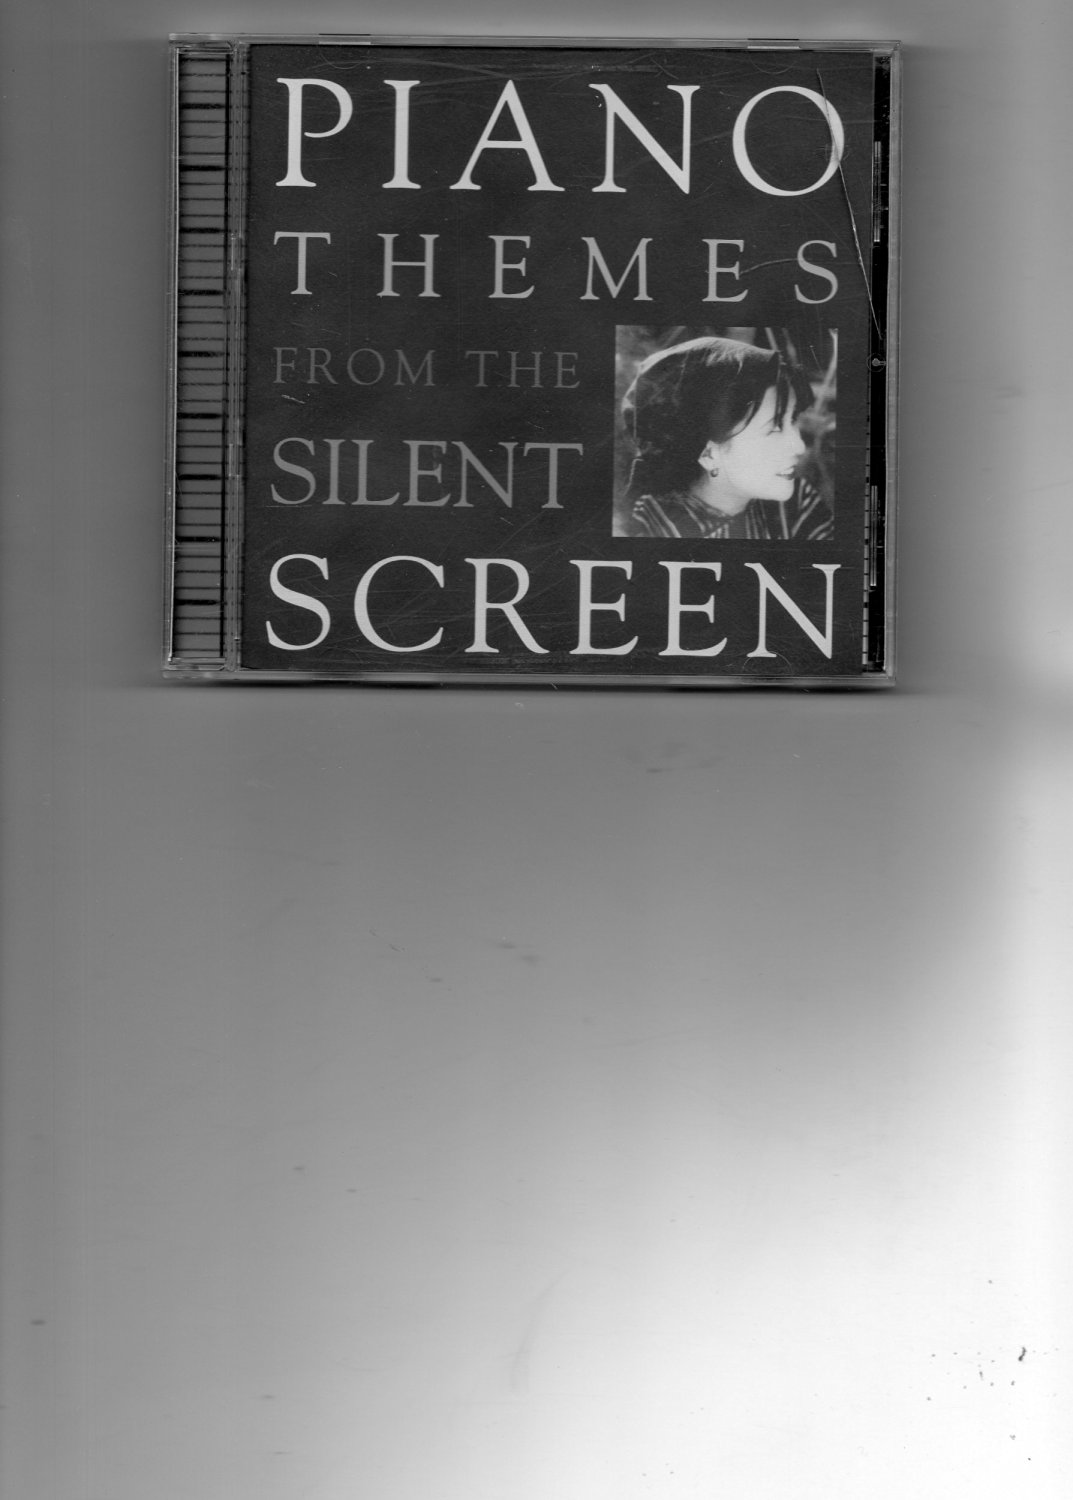 Audio CD: PIANO THEMES FROM THE SILENT SCREEN (Cabinet of Dr. Caligari, Nosferatu, The Lost World, Sunrise, Love & Duty Lian'ai Y Yiwu, The Peach Girl)